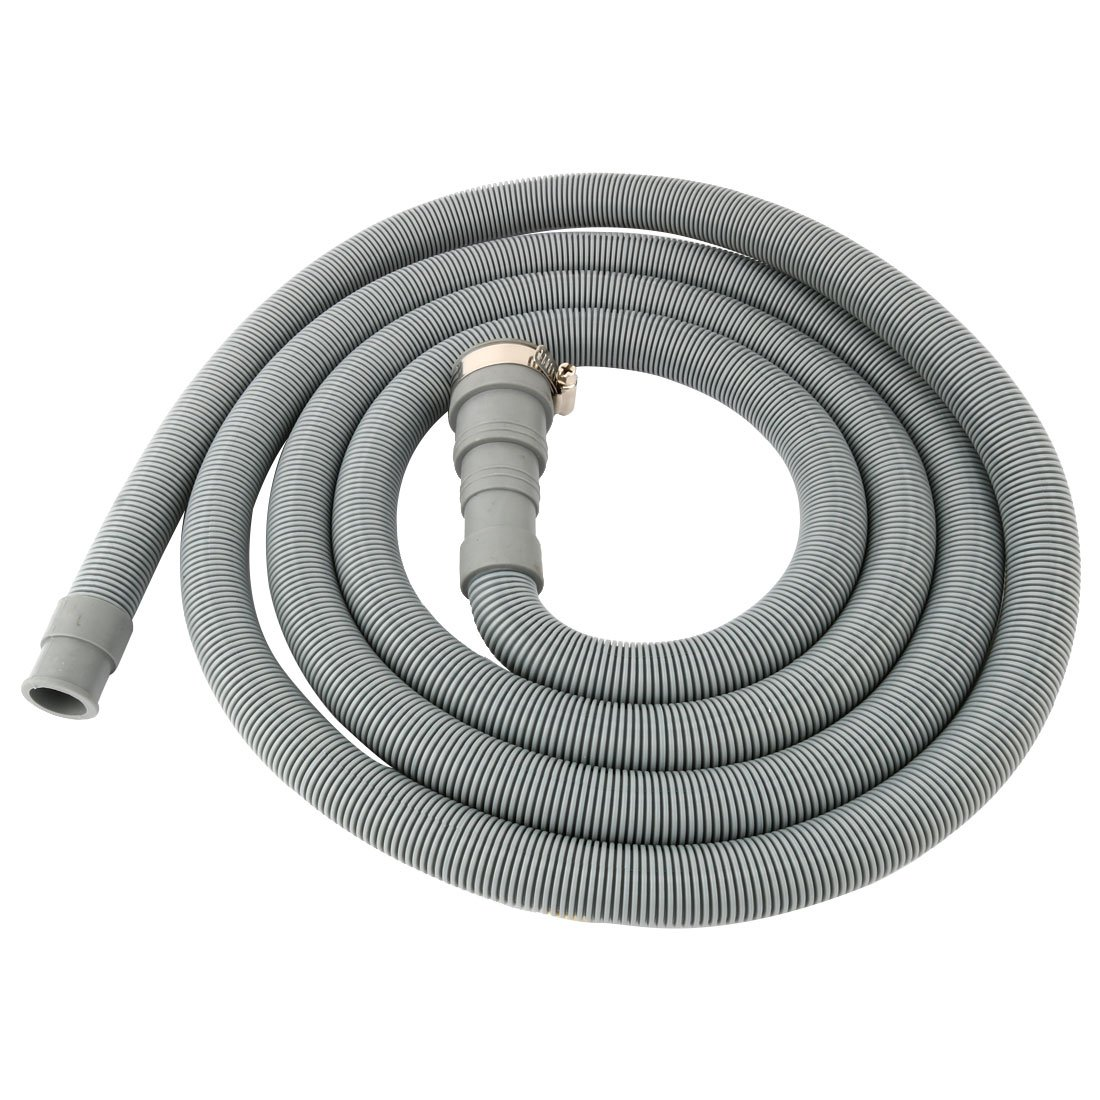 uxcell PVC Washing Machine Drain Hose Extension Kit, Universal Fit All Drain Hose 9.8 Ft